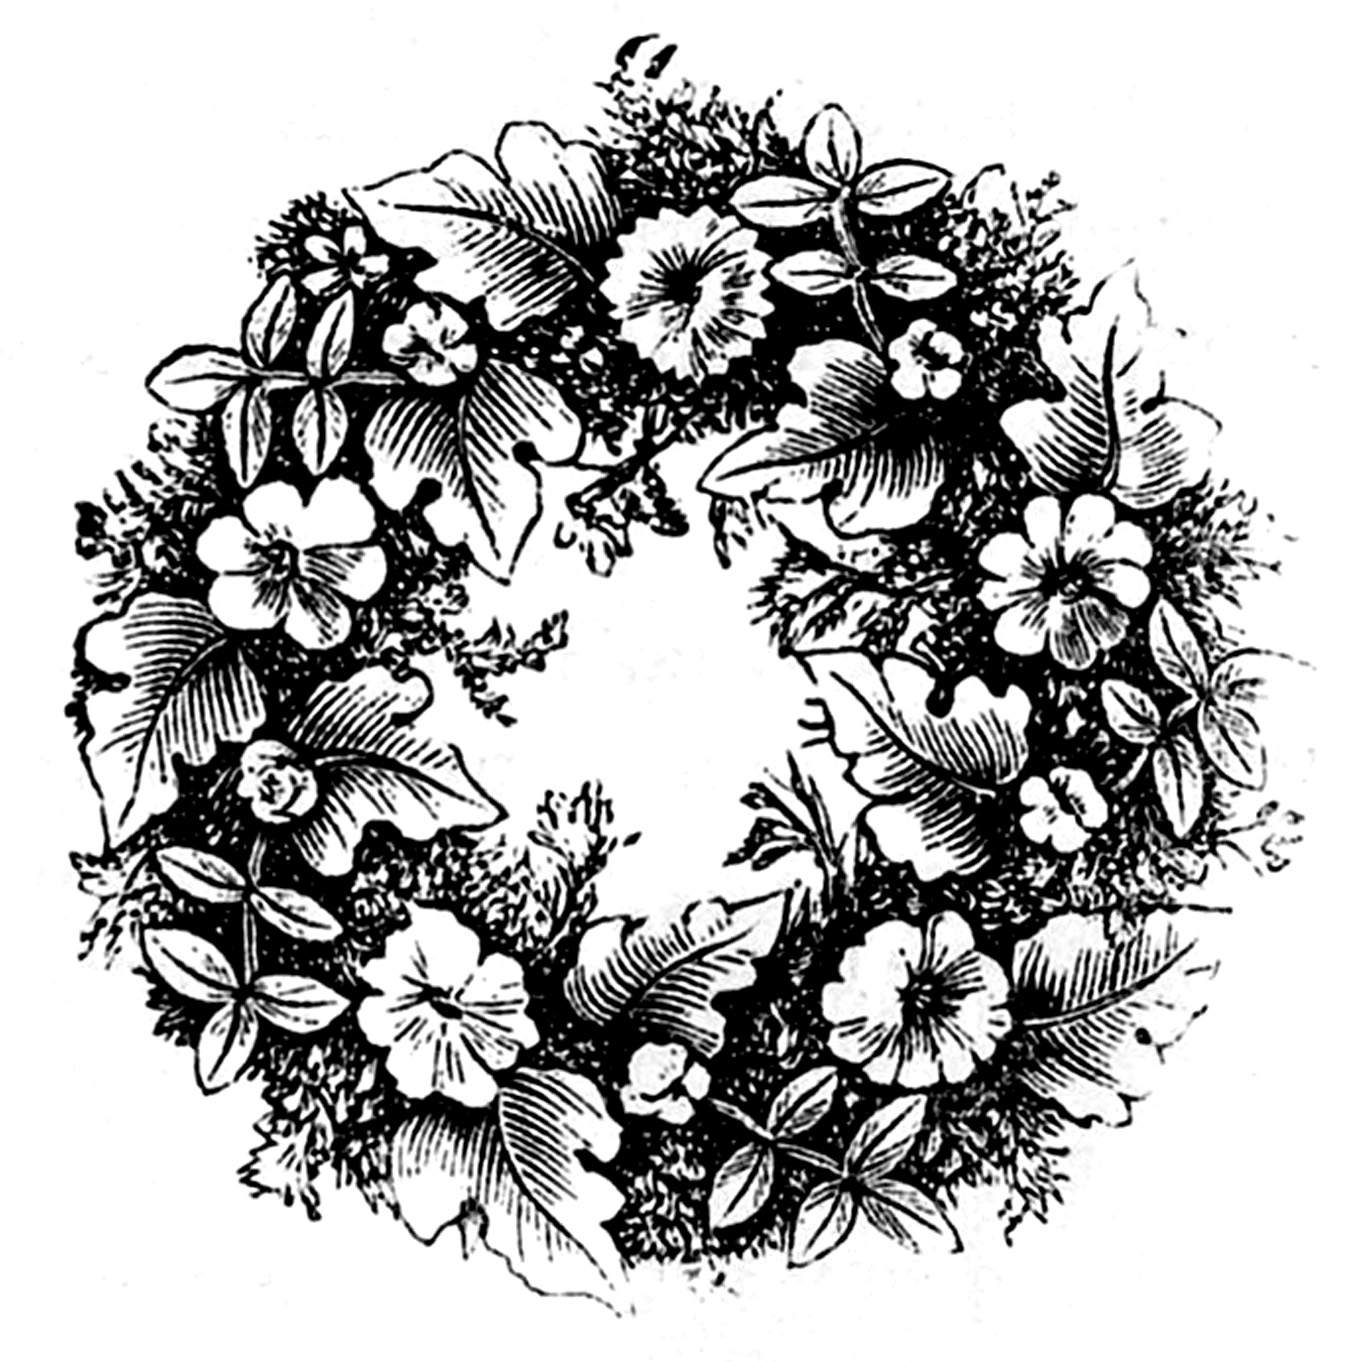 Black and white floral wreath stock vector image 65241515 - Black And White Floral Wreath Stock Vector Image 65241515 1300x1390 Vintage